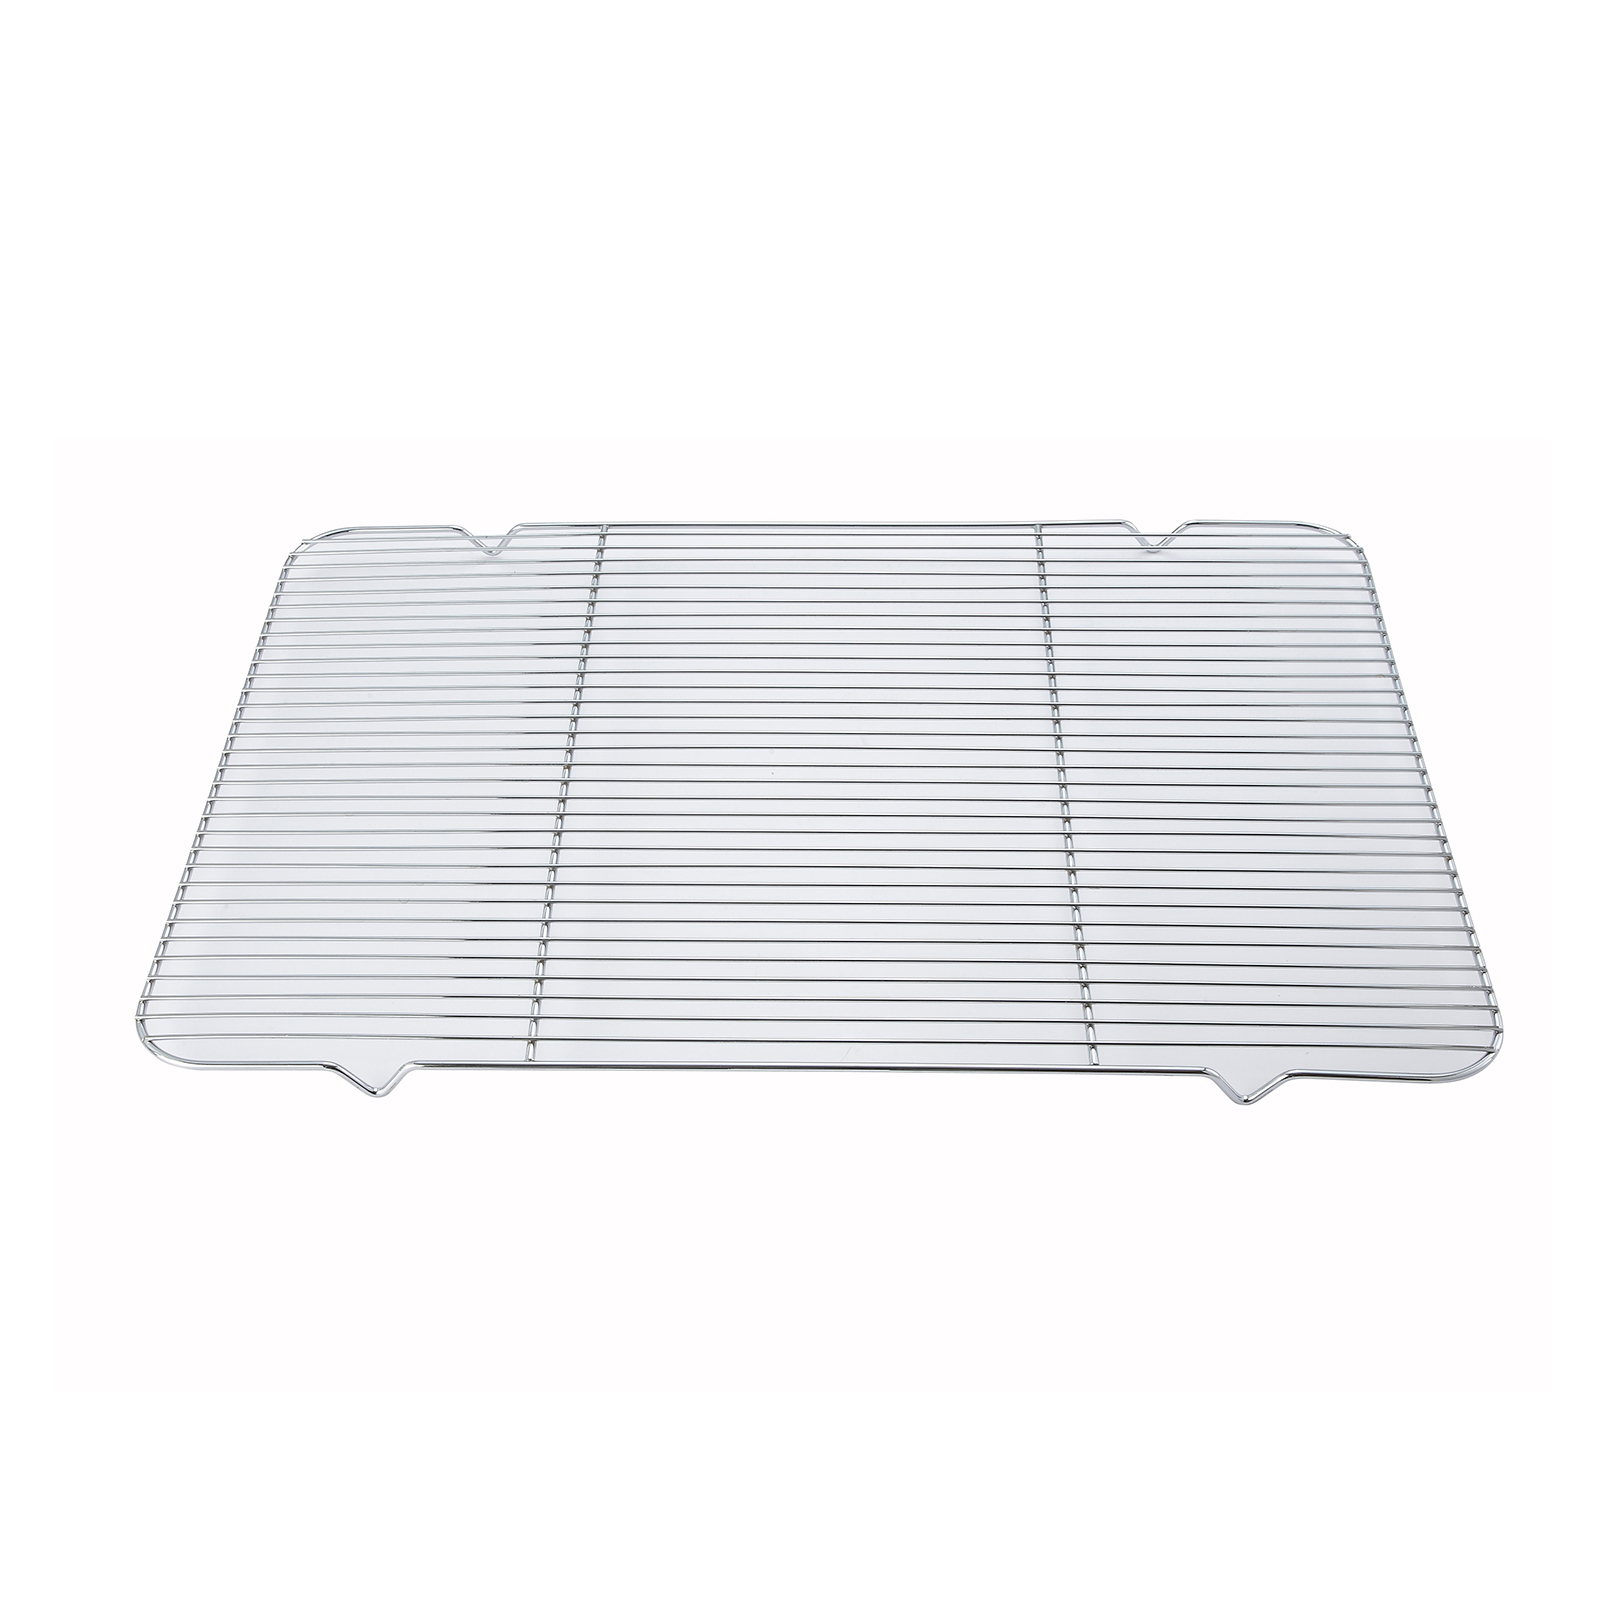 Winco ICR-1725 wire pan rack / grate